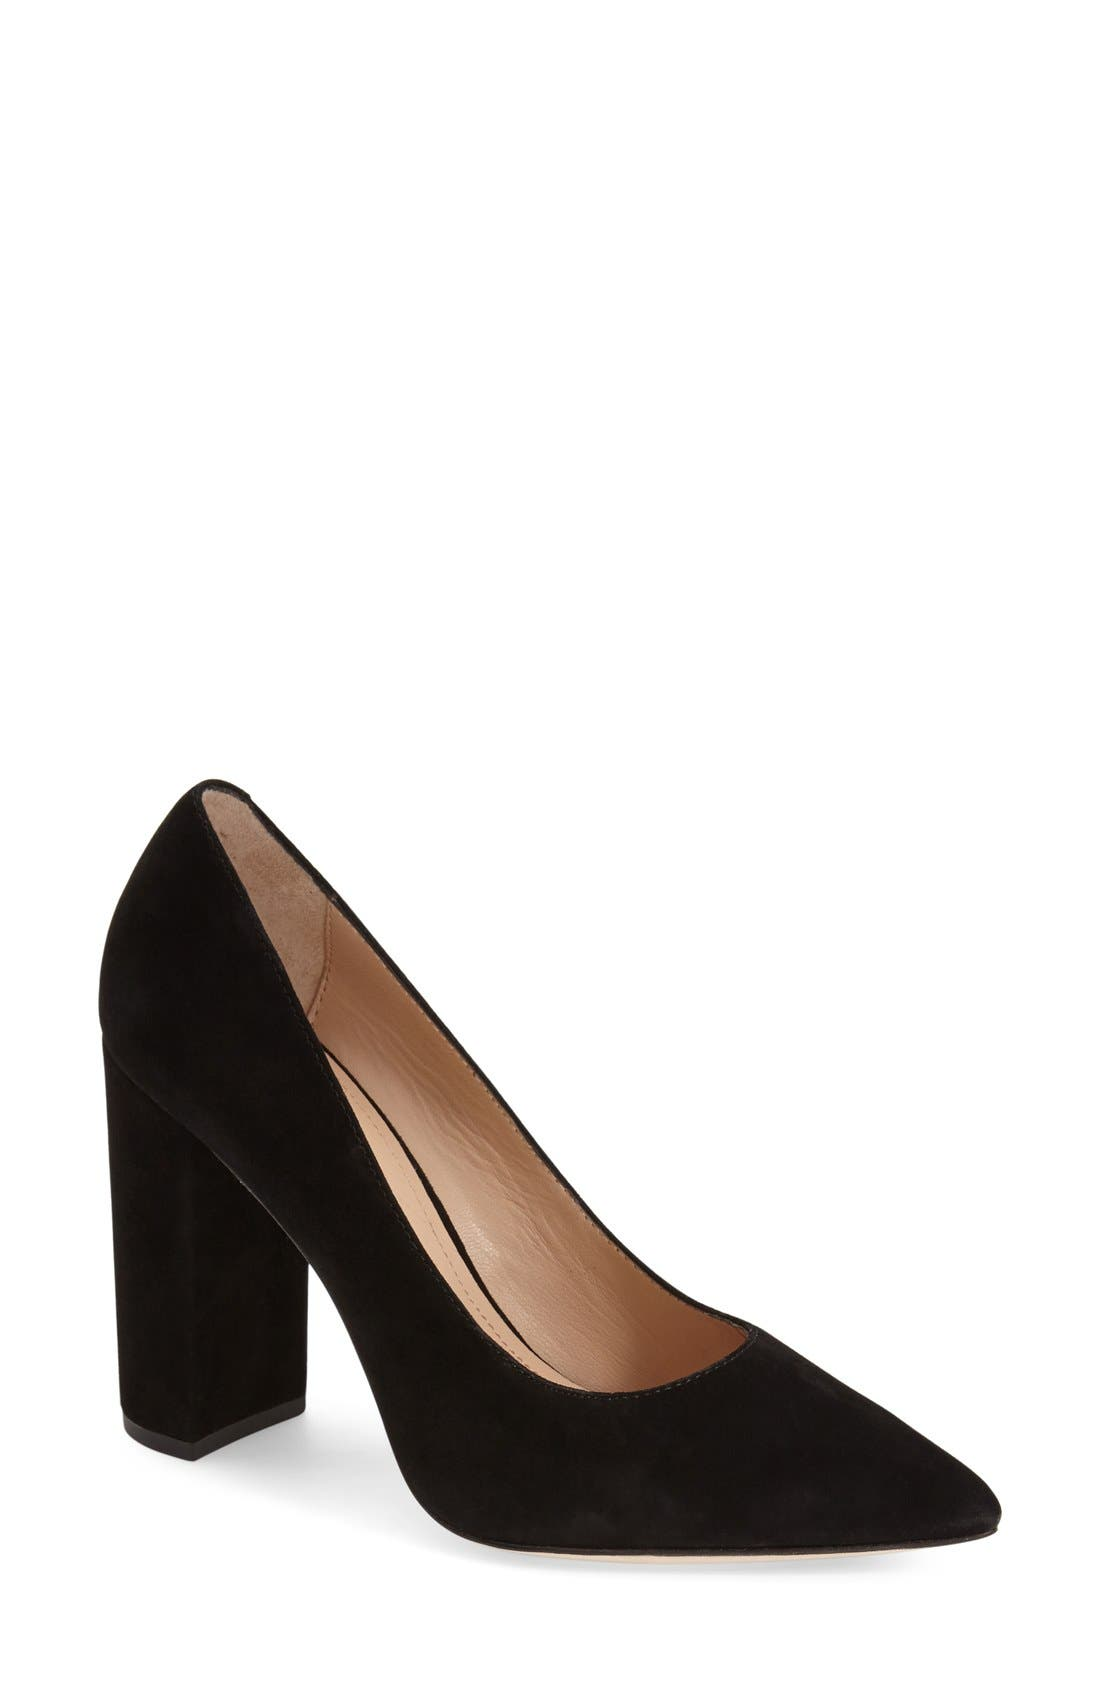 Alternate Image 1 Selected - Pour la Victoire 'Celina' Pointy Toe Pump (Women)